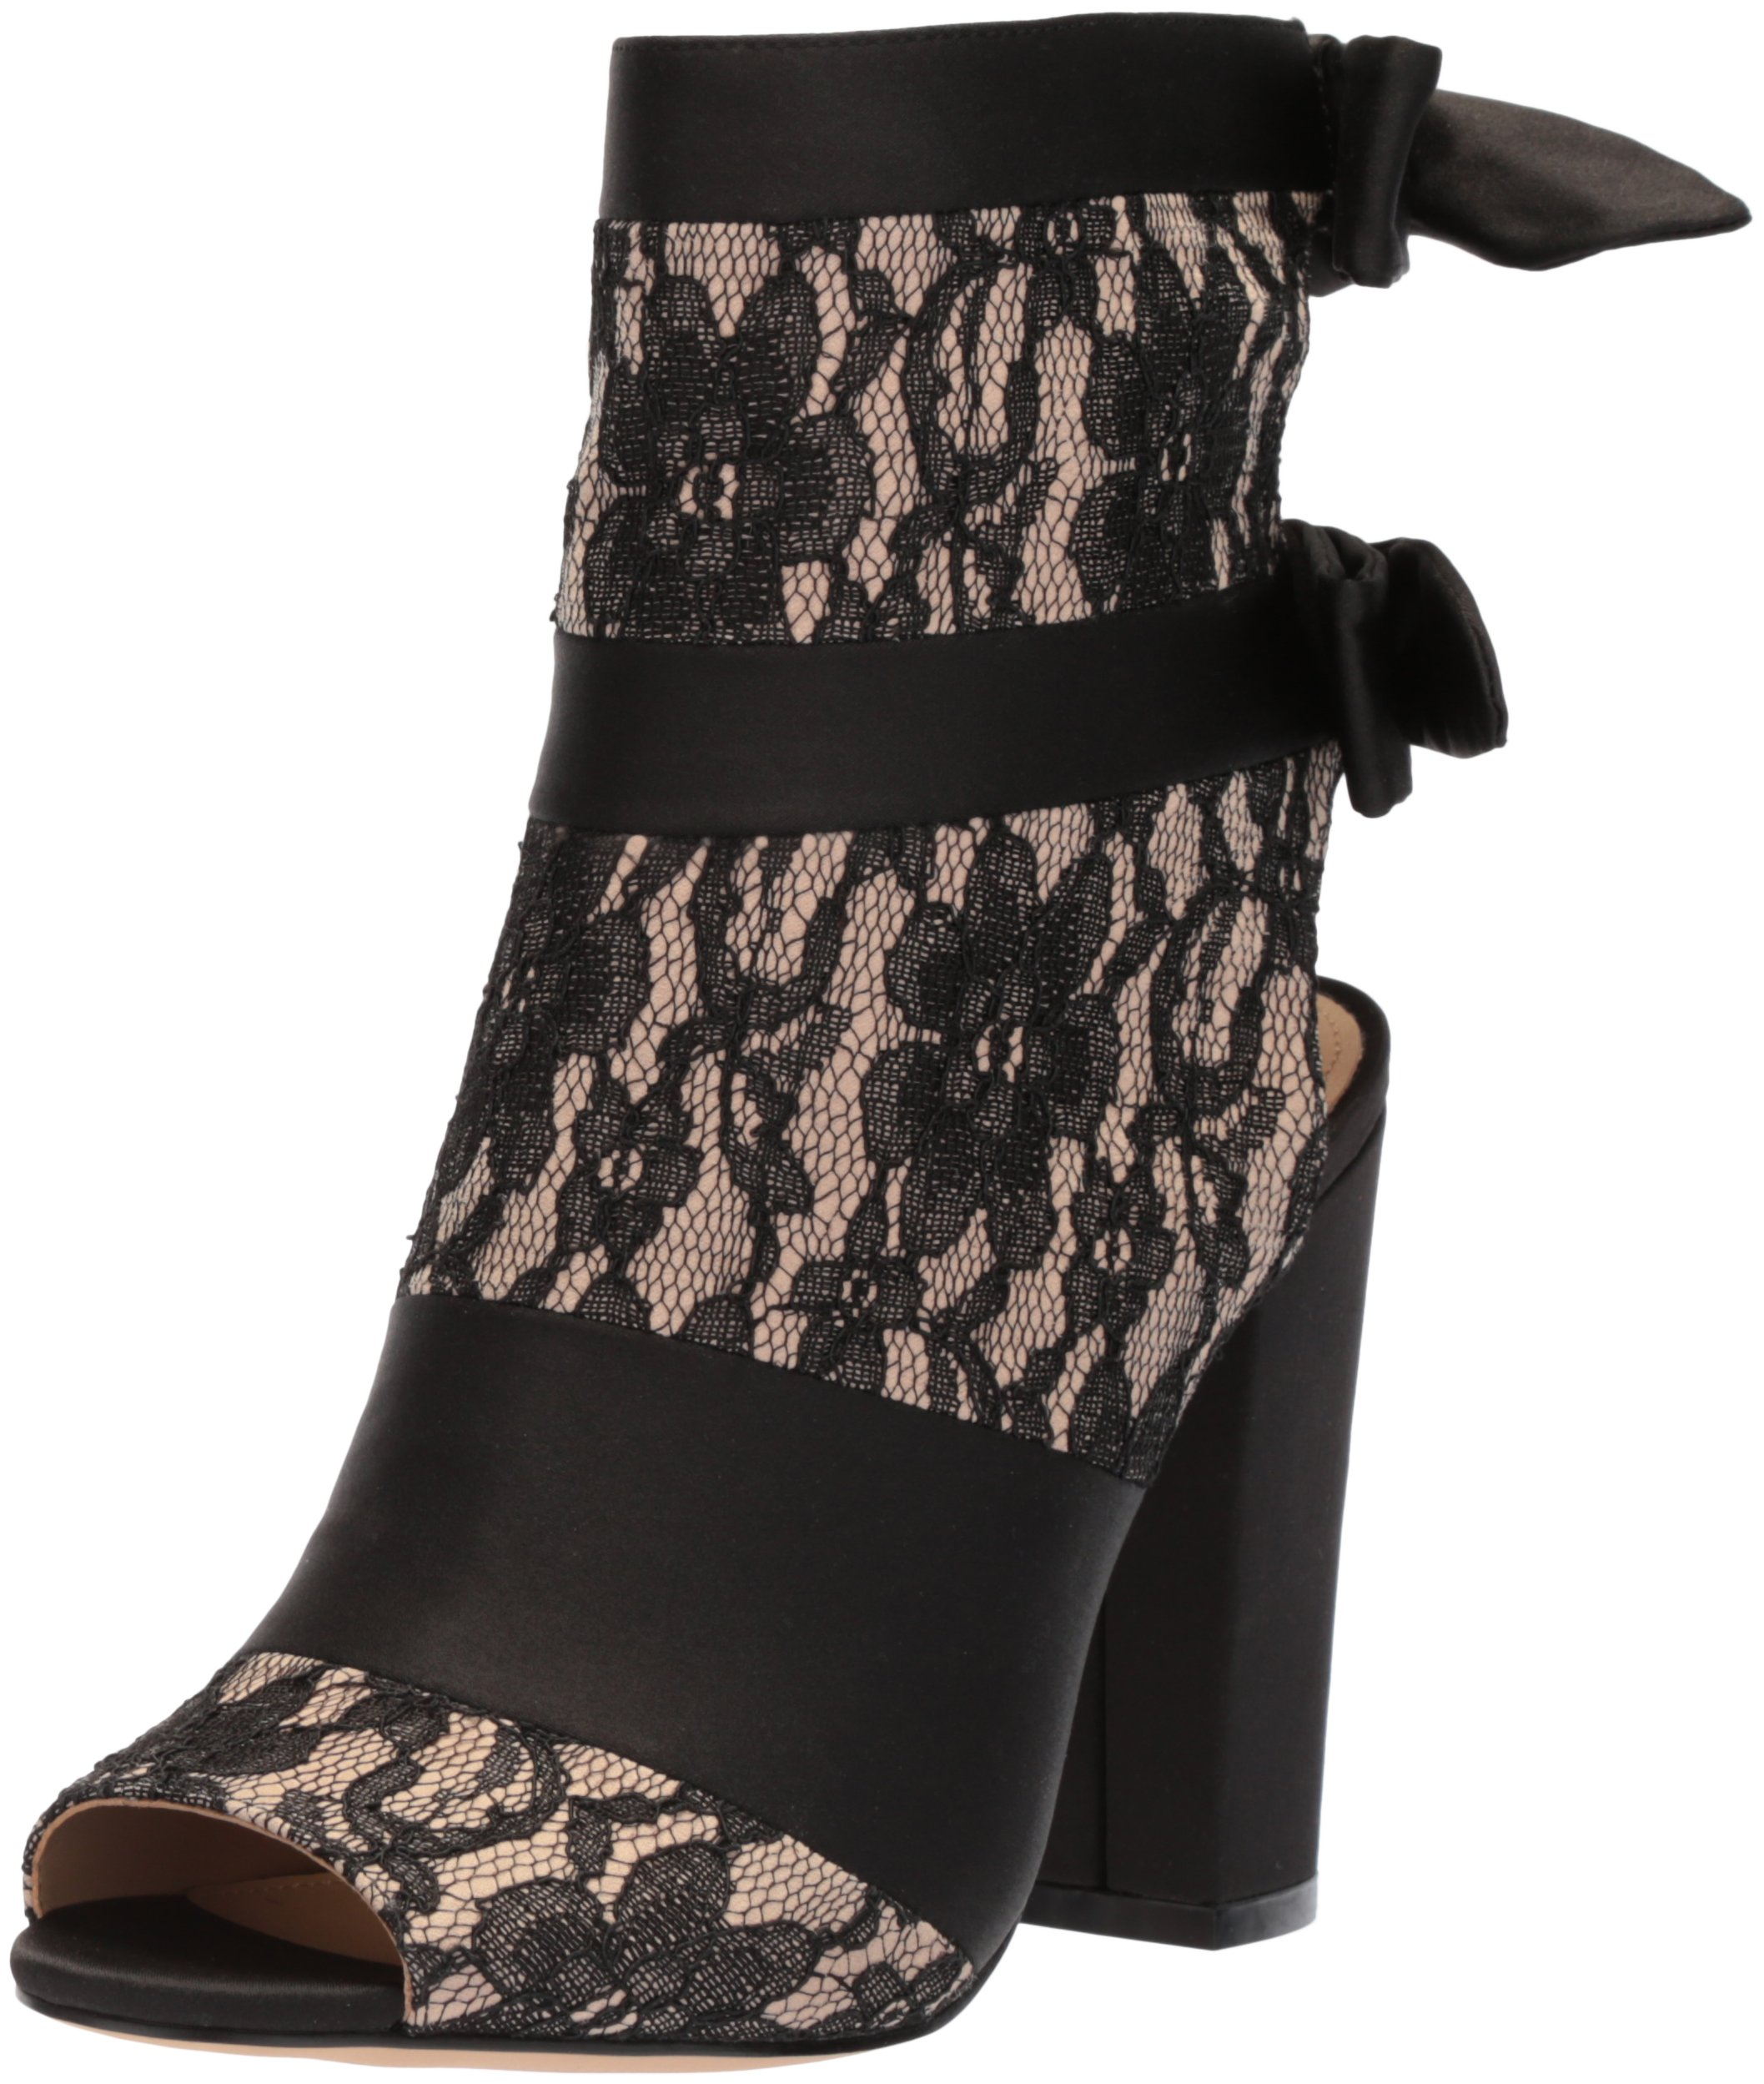 The Fix Women's Phoebe Open Toe Block Heel Bootie with Bow Detail Ankle Boot, Black/Nude Lace, 8.5 B US